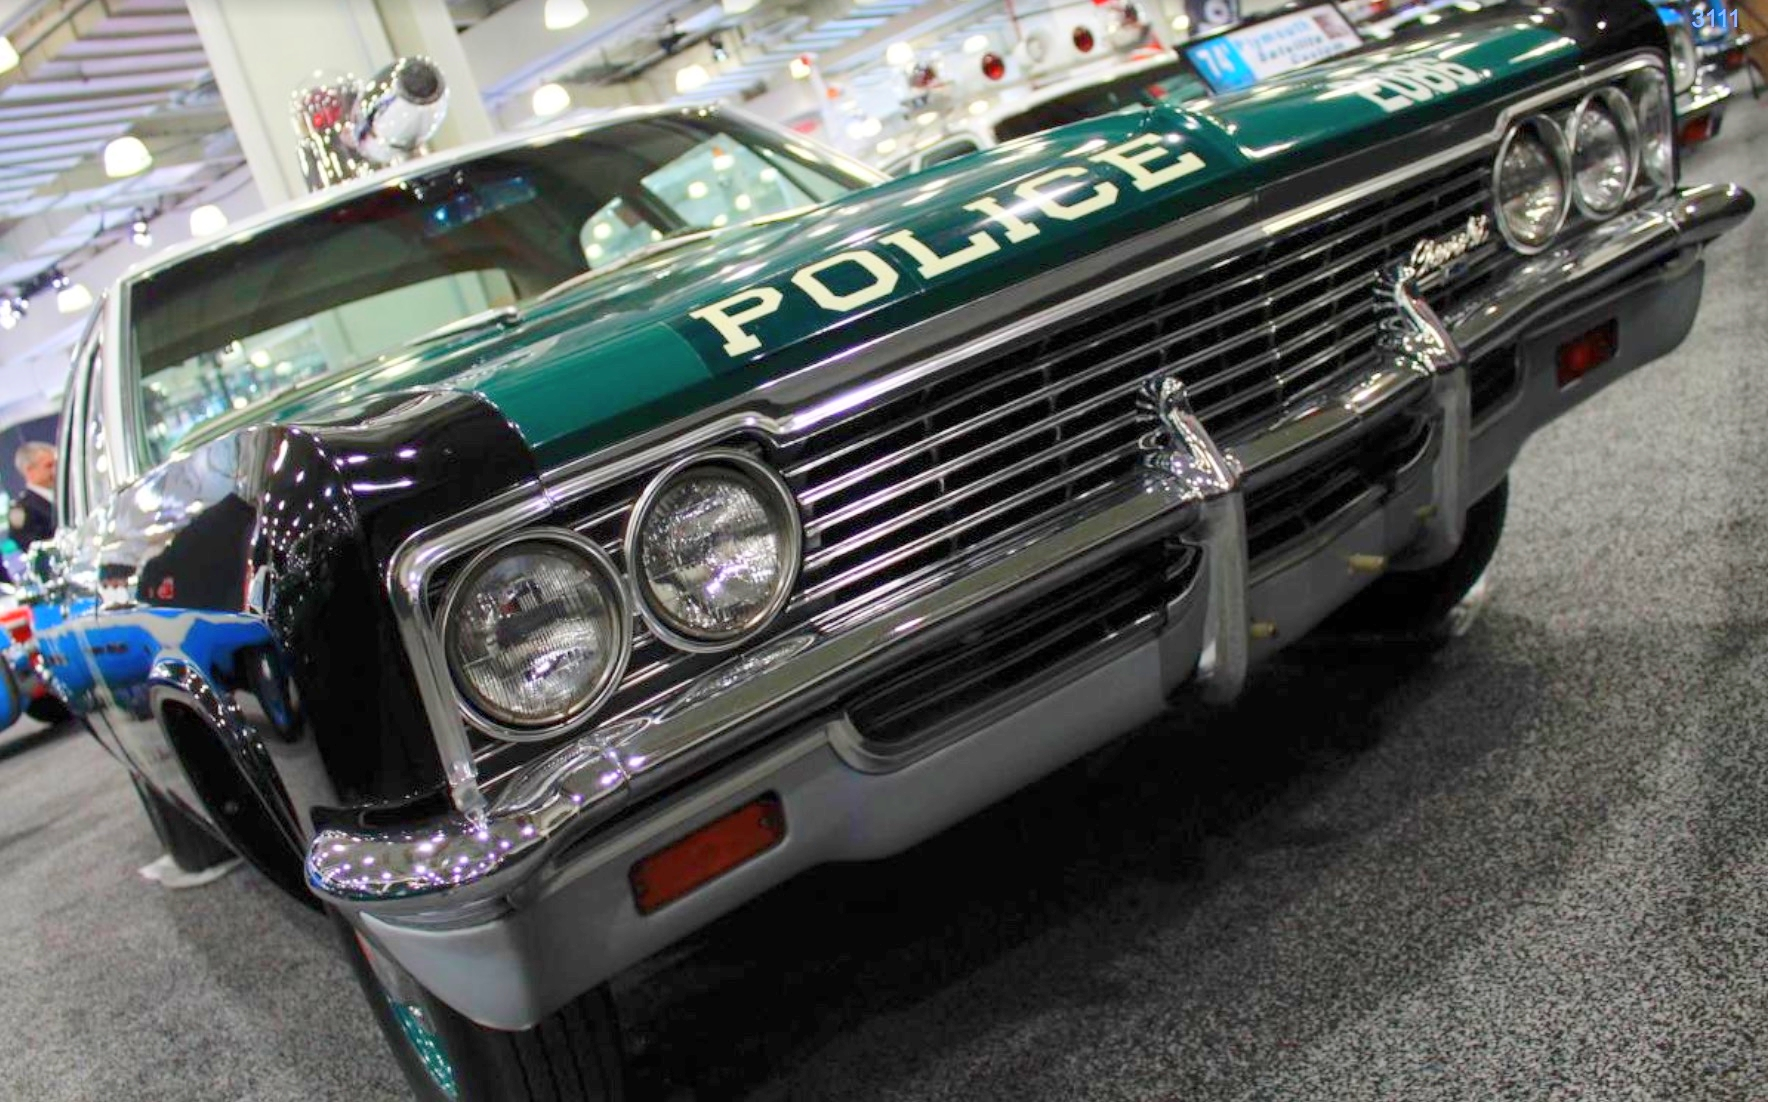 1966 CHEVROLET BISCAYNE –  This Chevy Biscayne once patrolled the NYPD's 18th Precinct, also known as the Midtown North Precinct.